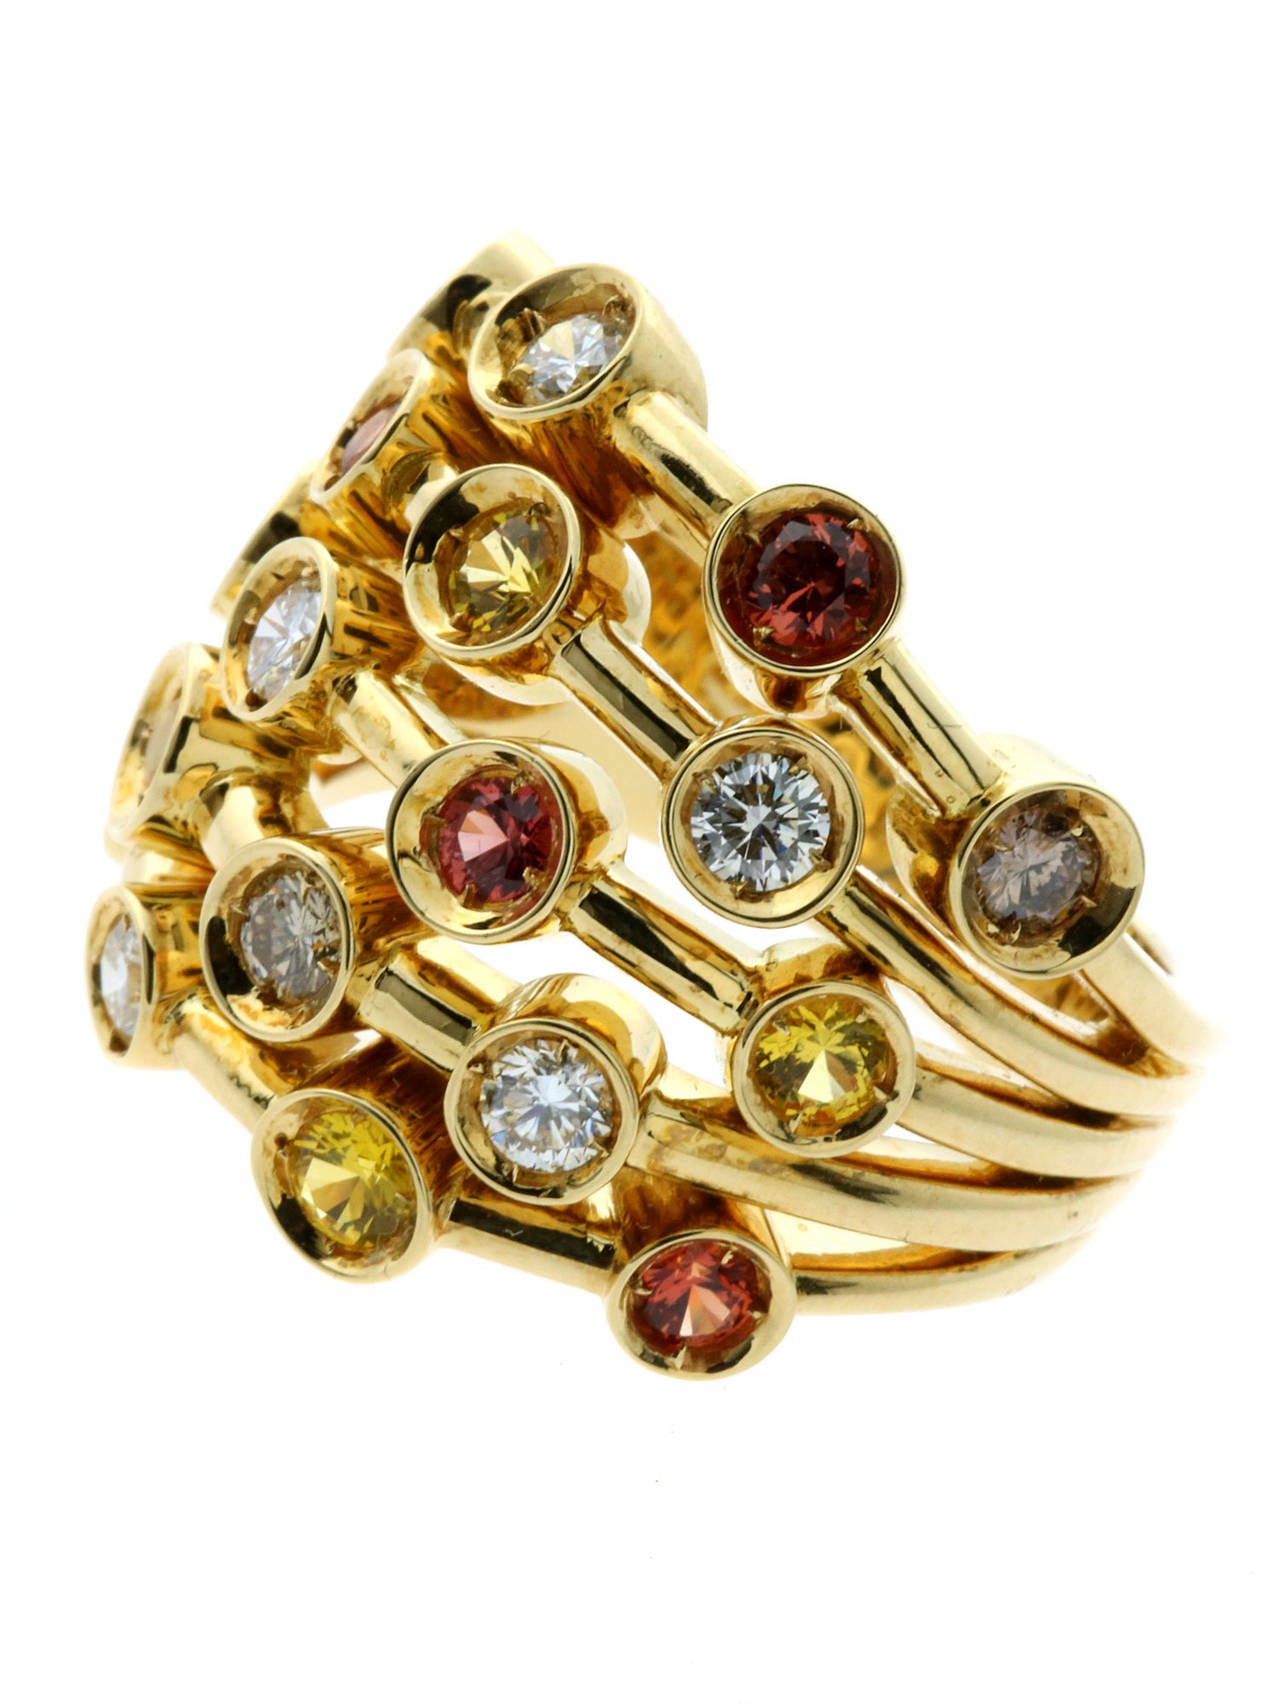 A magnificent authentic Chanel cocktail ring featuring  a brilliant assortment of multicolored fancy sapphires and both white & fancy brown diamonds set in 18k yellow gold.